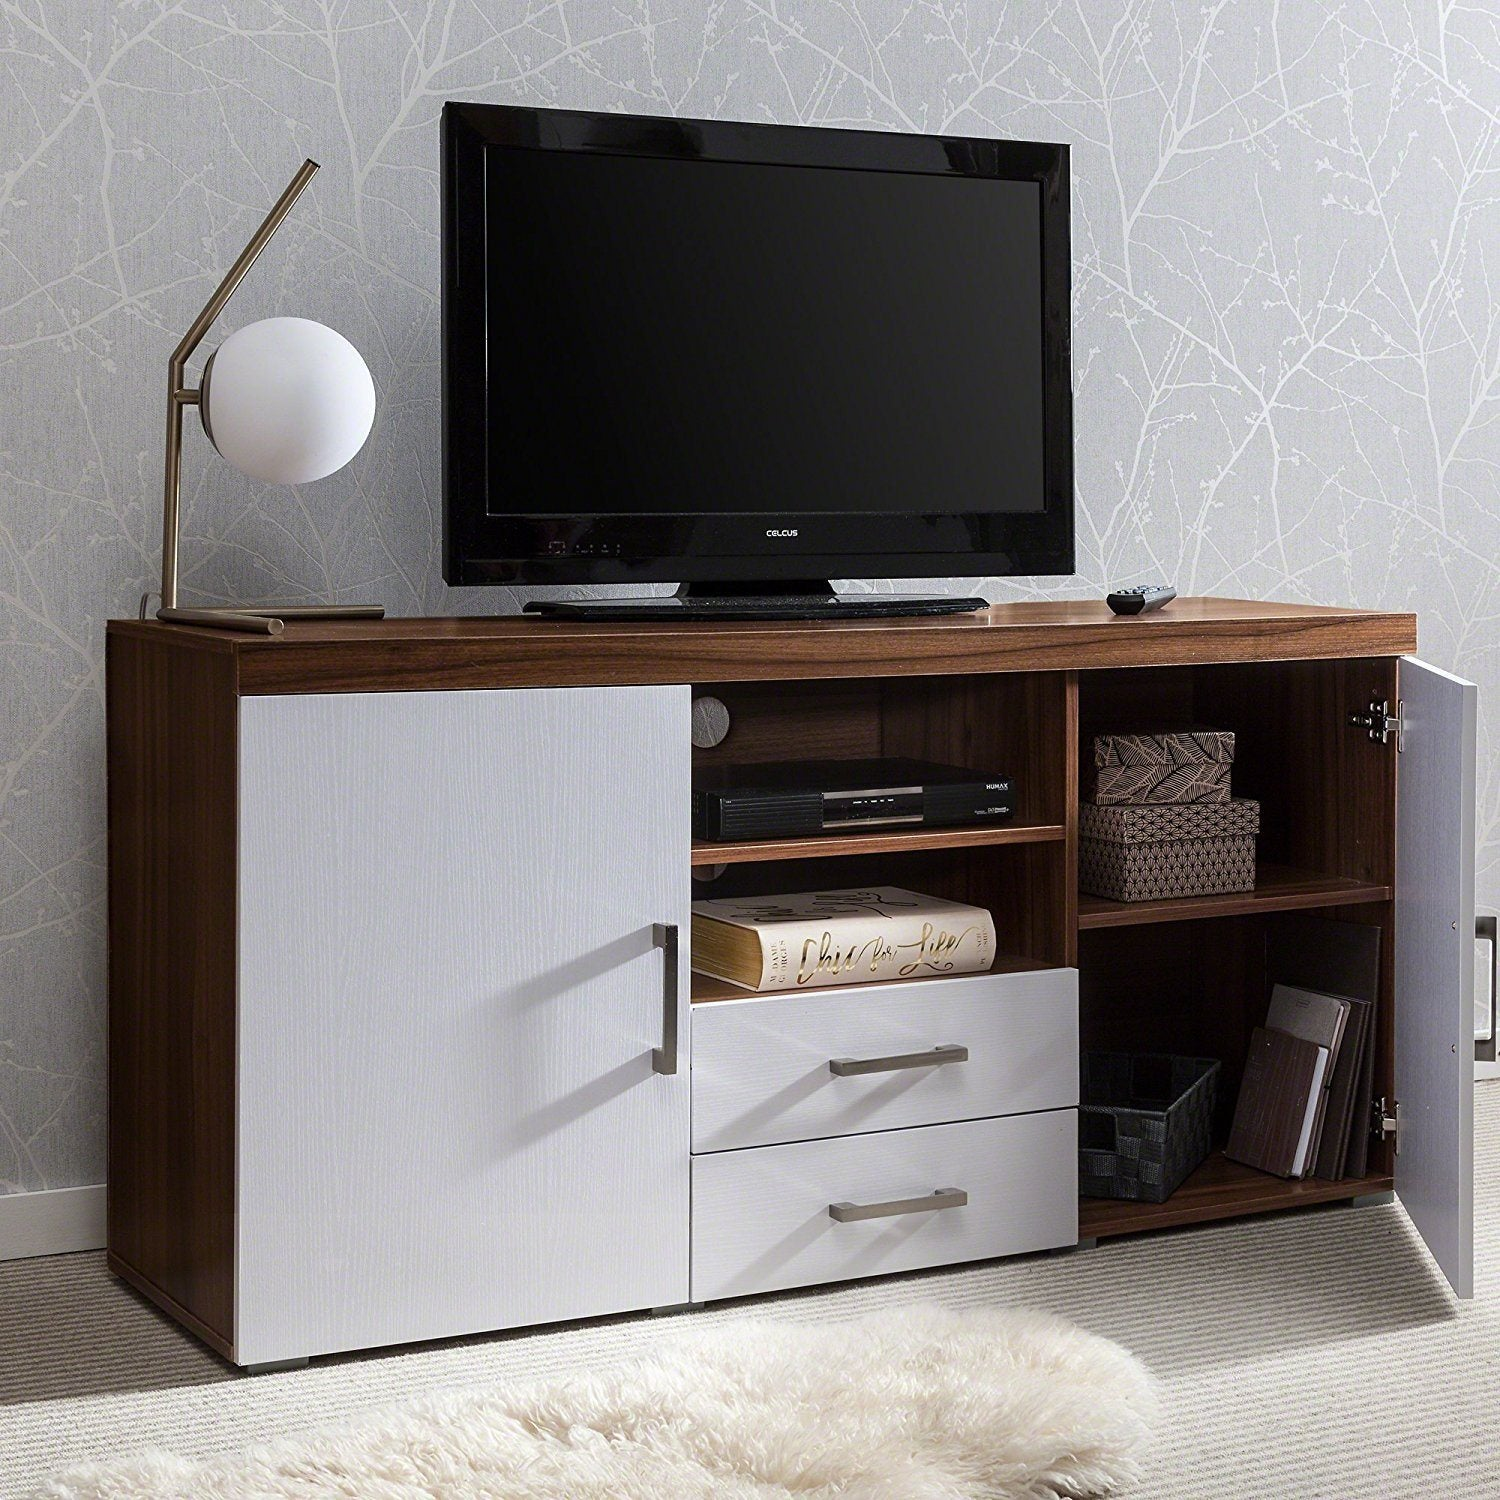 Sideboard Tv Cabinet With Drawer And Shelves Walnut White